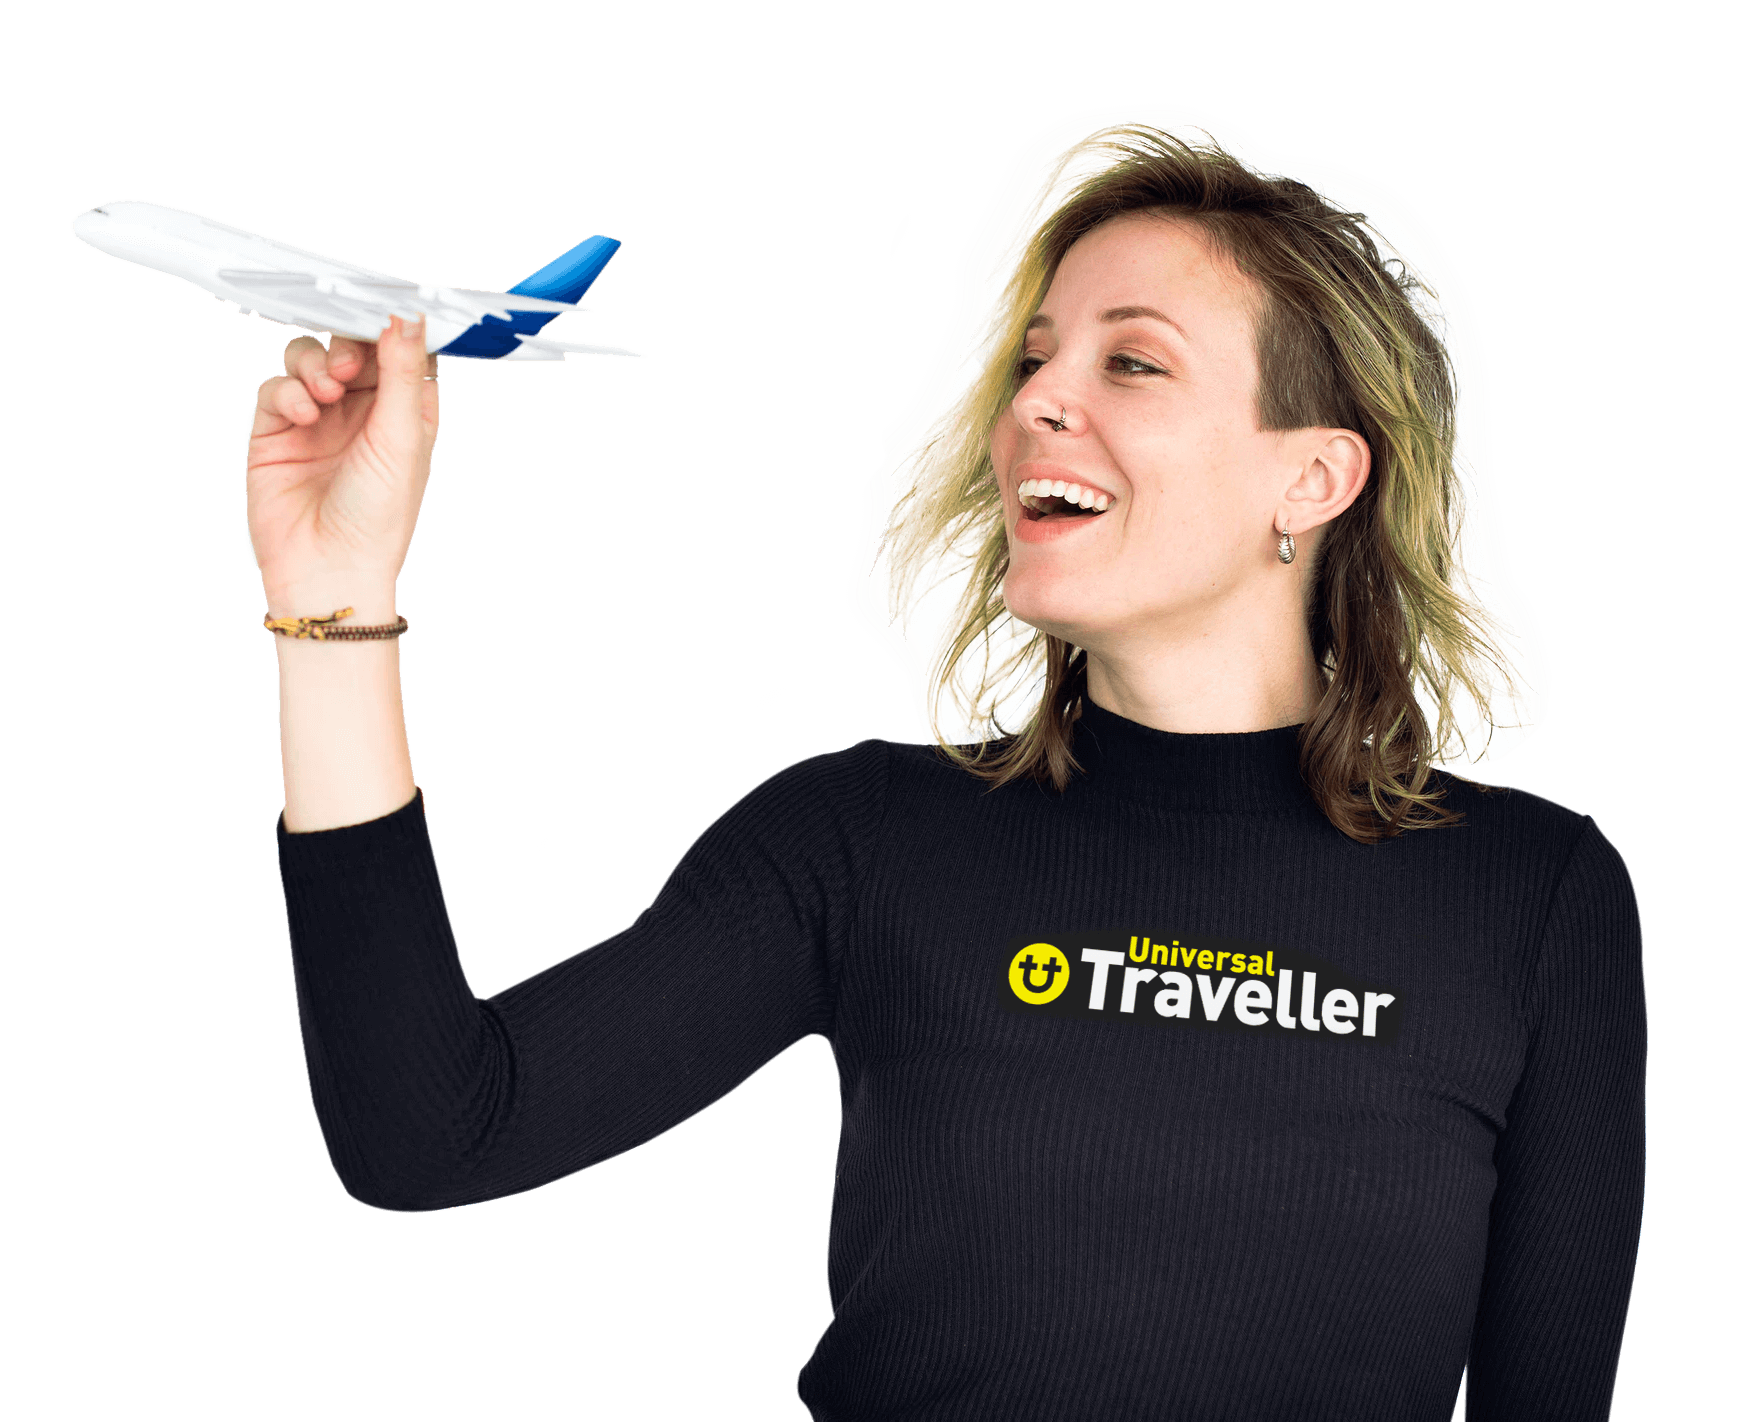 universal traveller team member holding a toy aeroplane